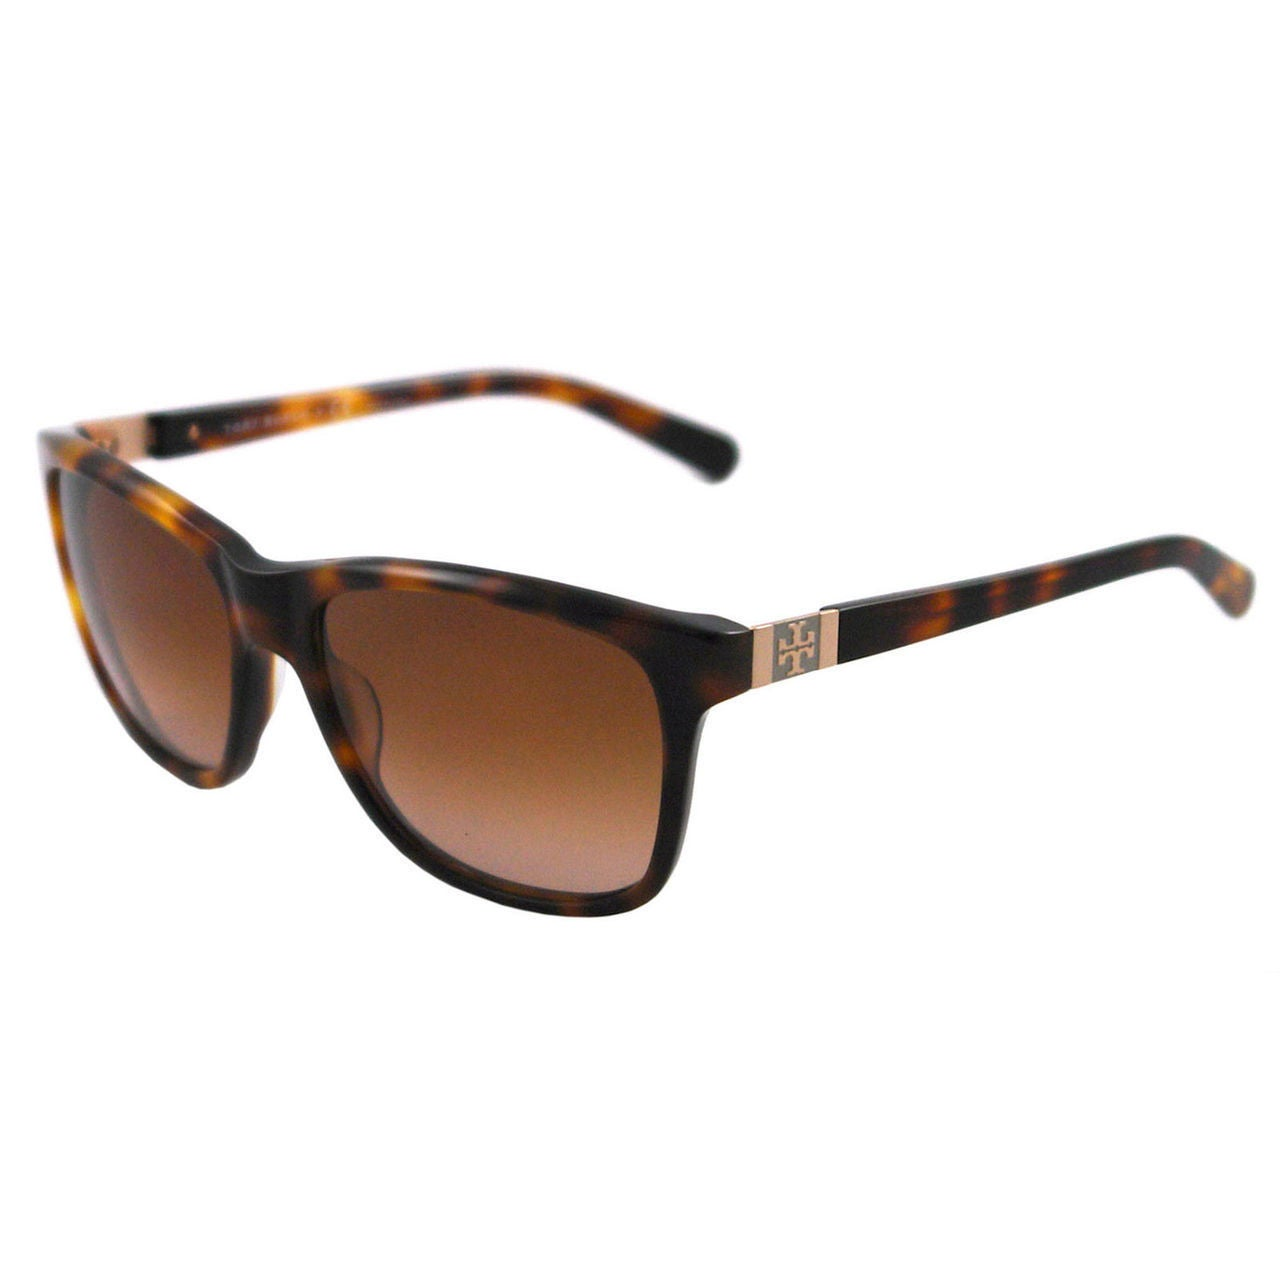 be67dd213ae2 Shop Tory Burch Women's TY 7031 936/13 Amber Tortoise 57-16-130 mm  Sunglasses - Free Shipping Today - Overstock - 8626055